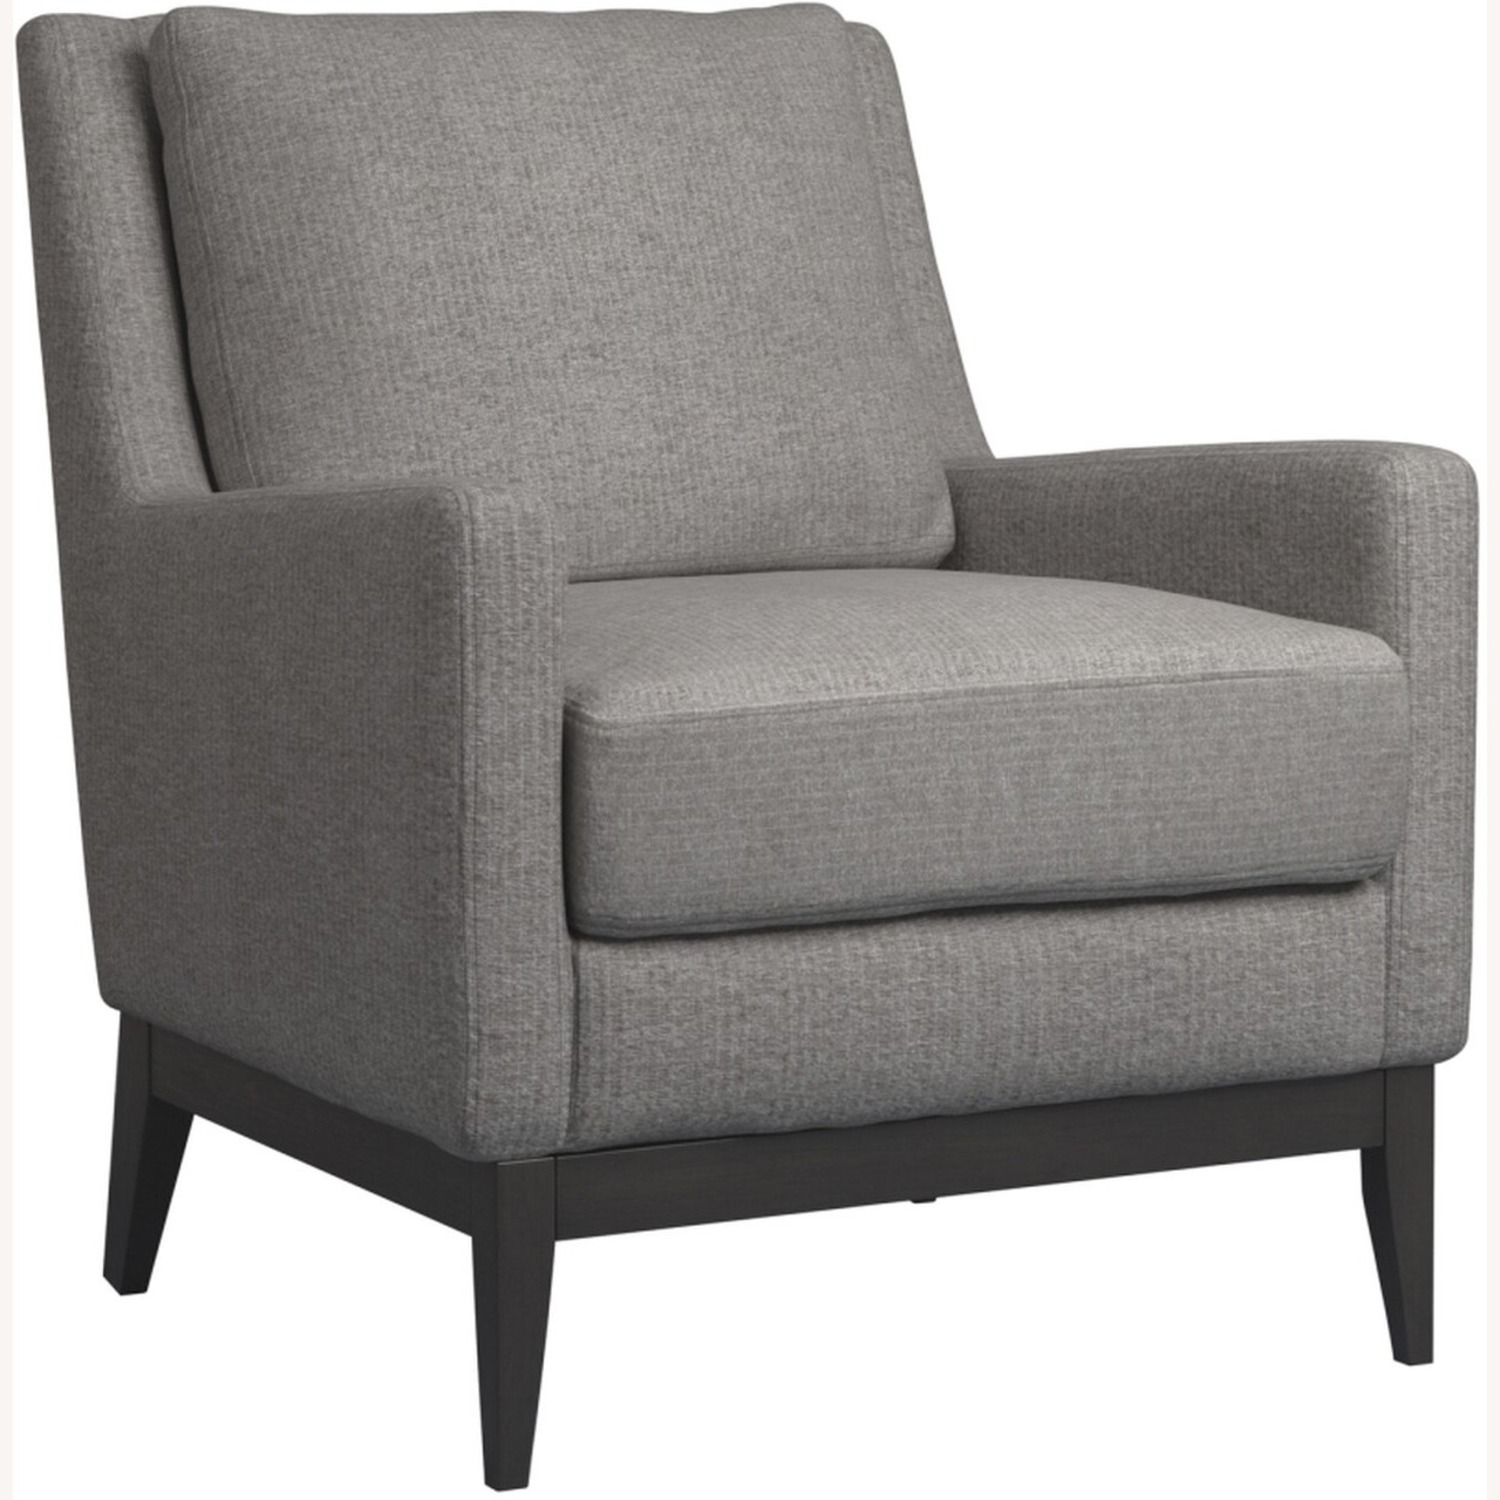 Accent Chair In Linen-Like Warm Grey Fabric Finish - image-1